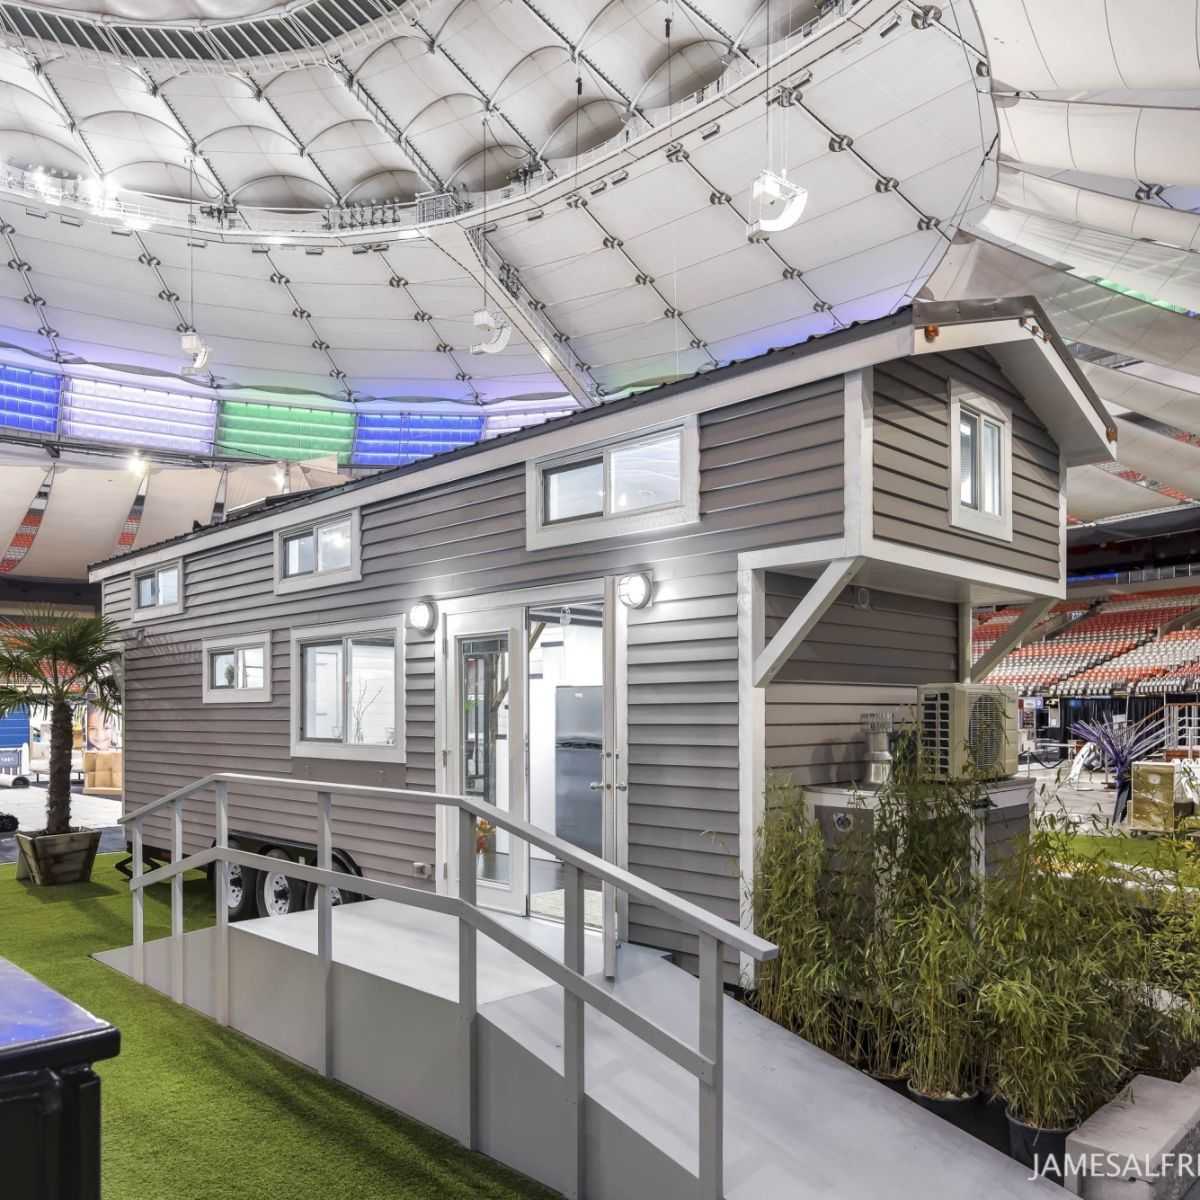 28ft Tiny Home Tiny House For Sale In Delta British